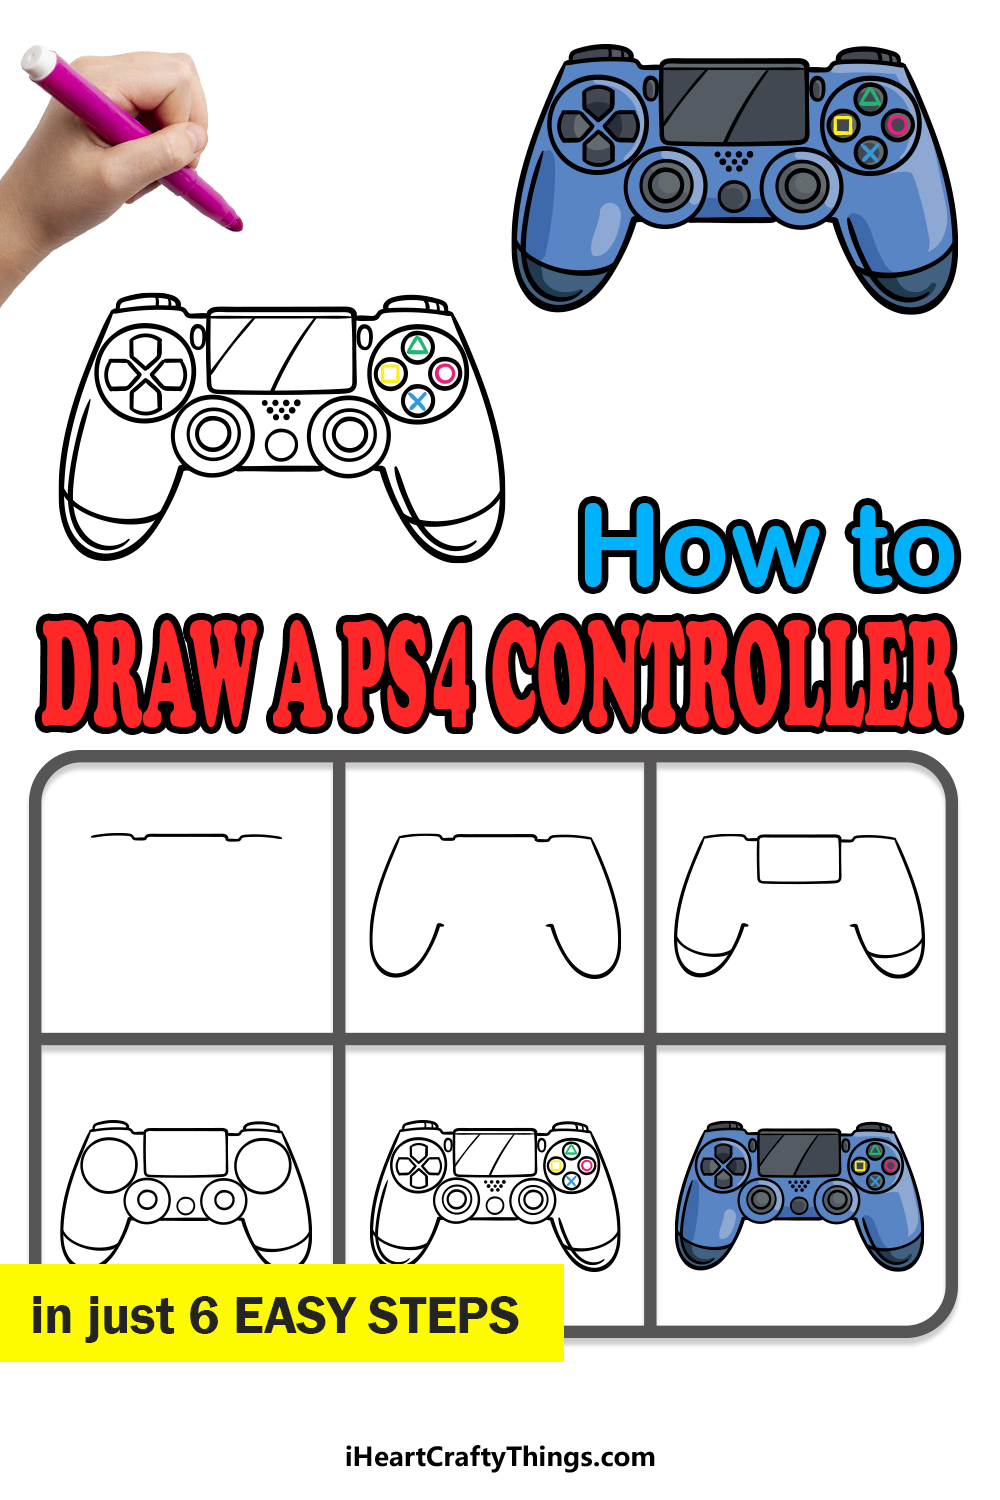 how to draw a PS4 controller in 6 easy steps